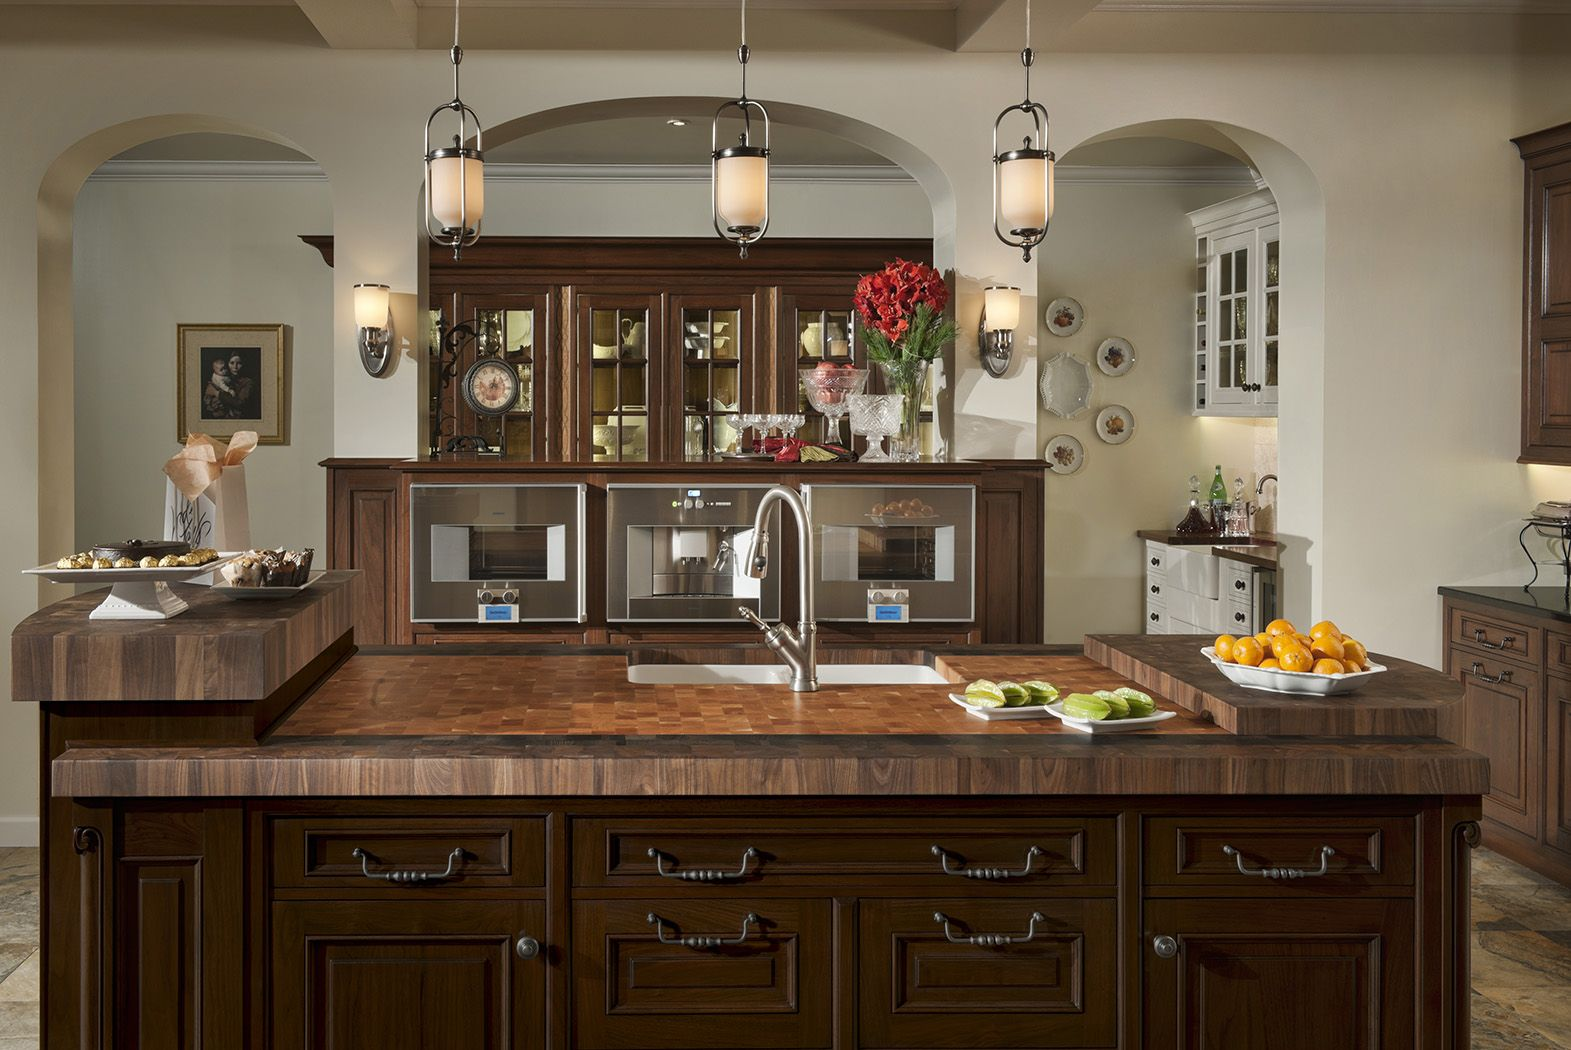 elegant traditions kitchen by woodmode shown in sable and wall street finishes on walnut on kitchen organization elegant id=32663